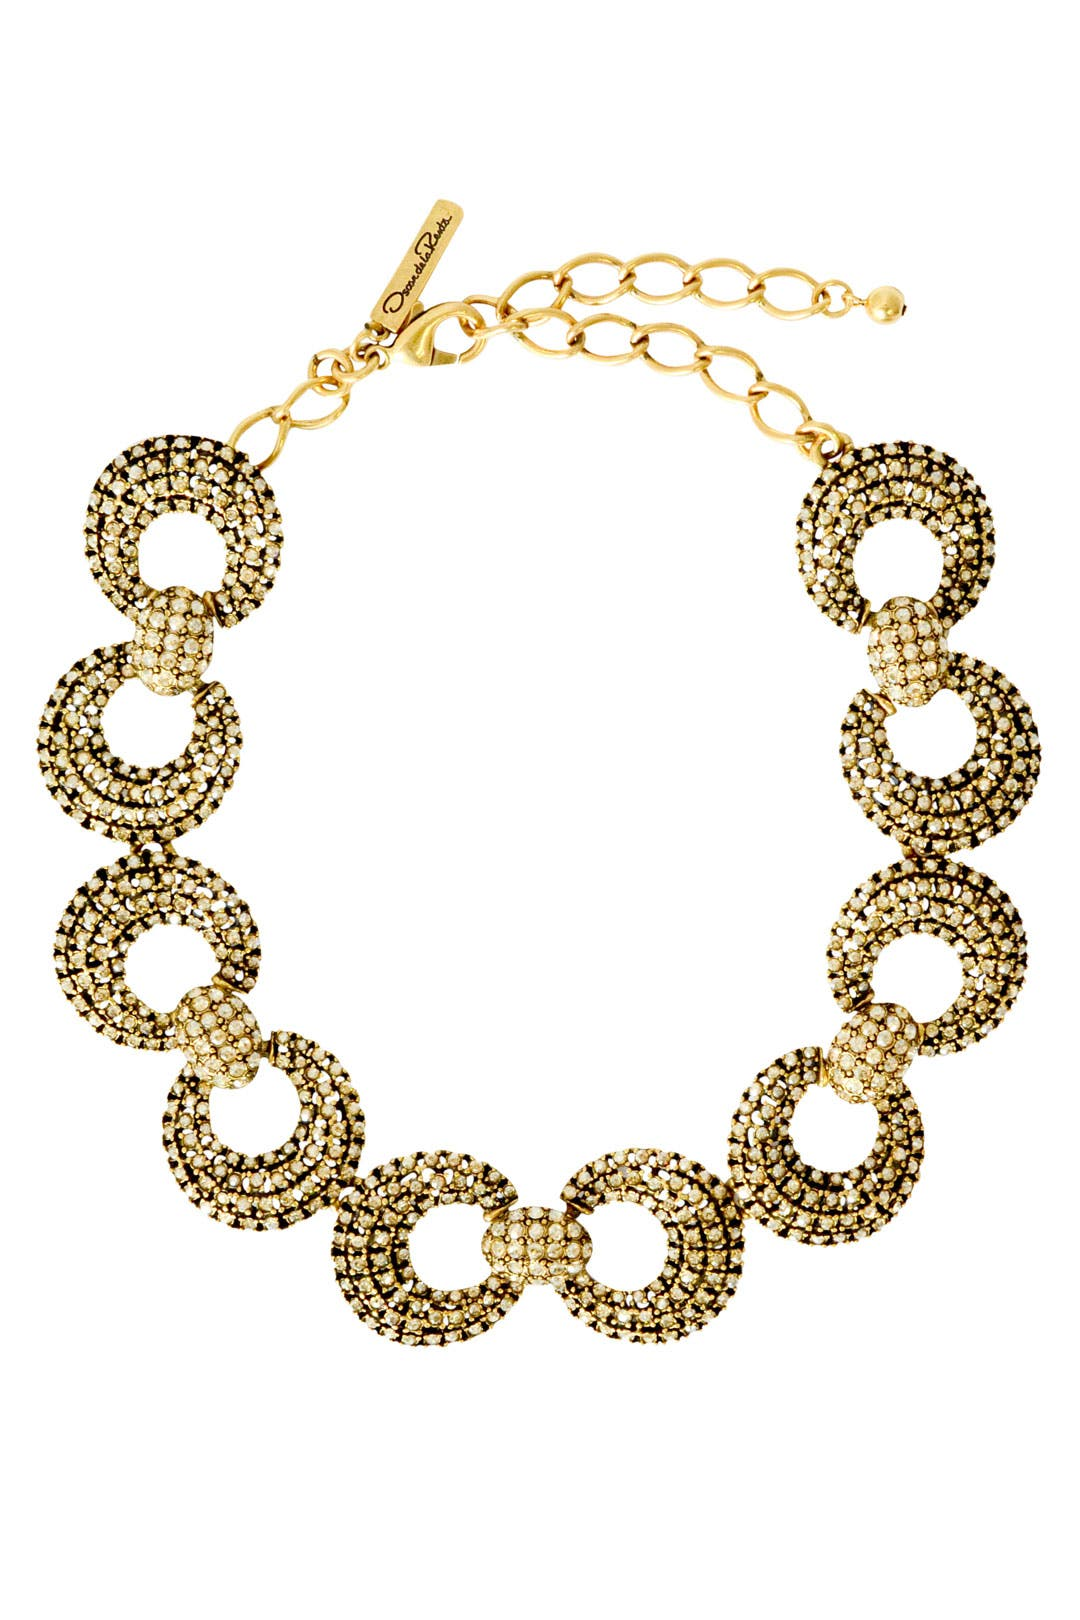 Lock and Key Necklace by Oscar de la Renta